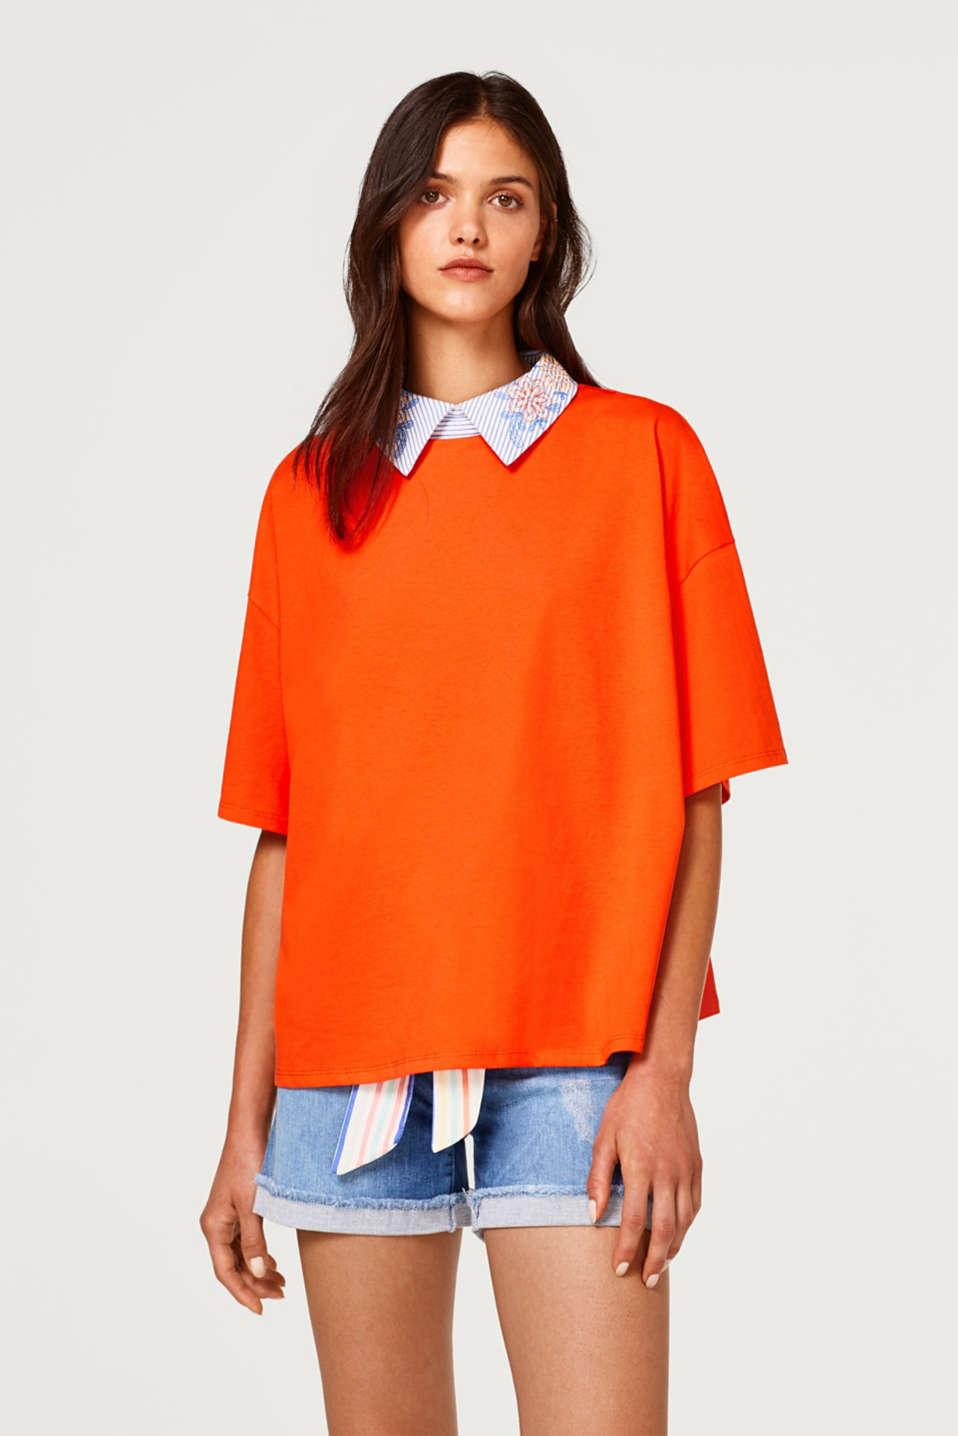 edc - Boxy T-shirt with a shirt collar, 100% collar